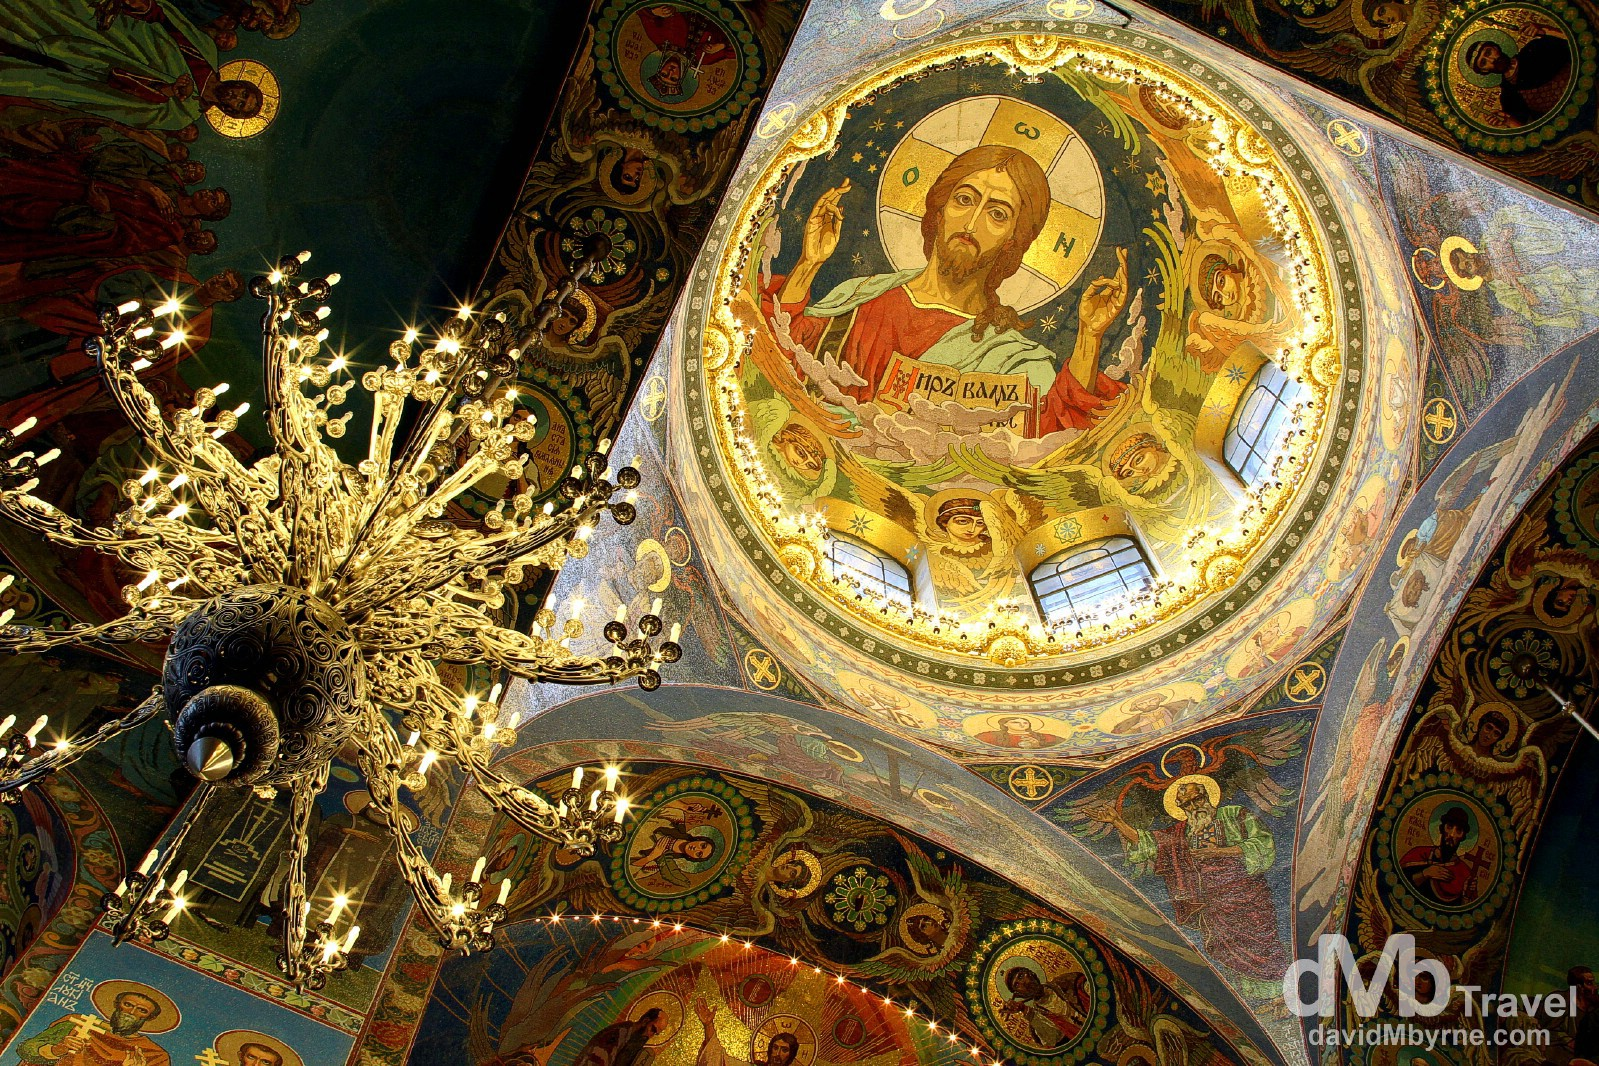 A section of the high ceiling of the Cathedral of the Resurrection of Christ, aka the Church on Spilled Blood, in St Petersburg, Russia. November 23rd 2012.